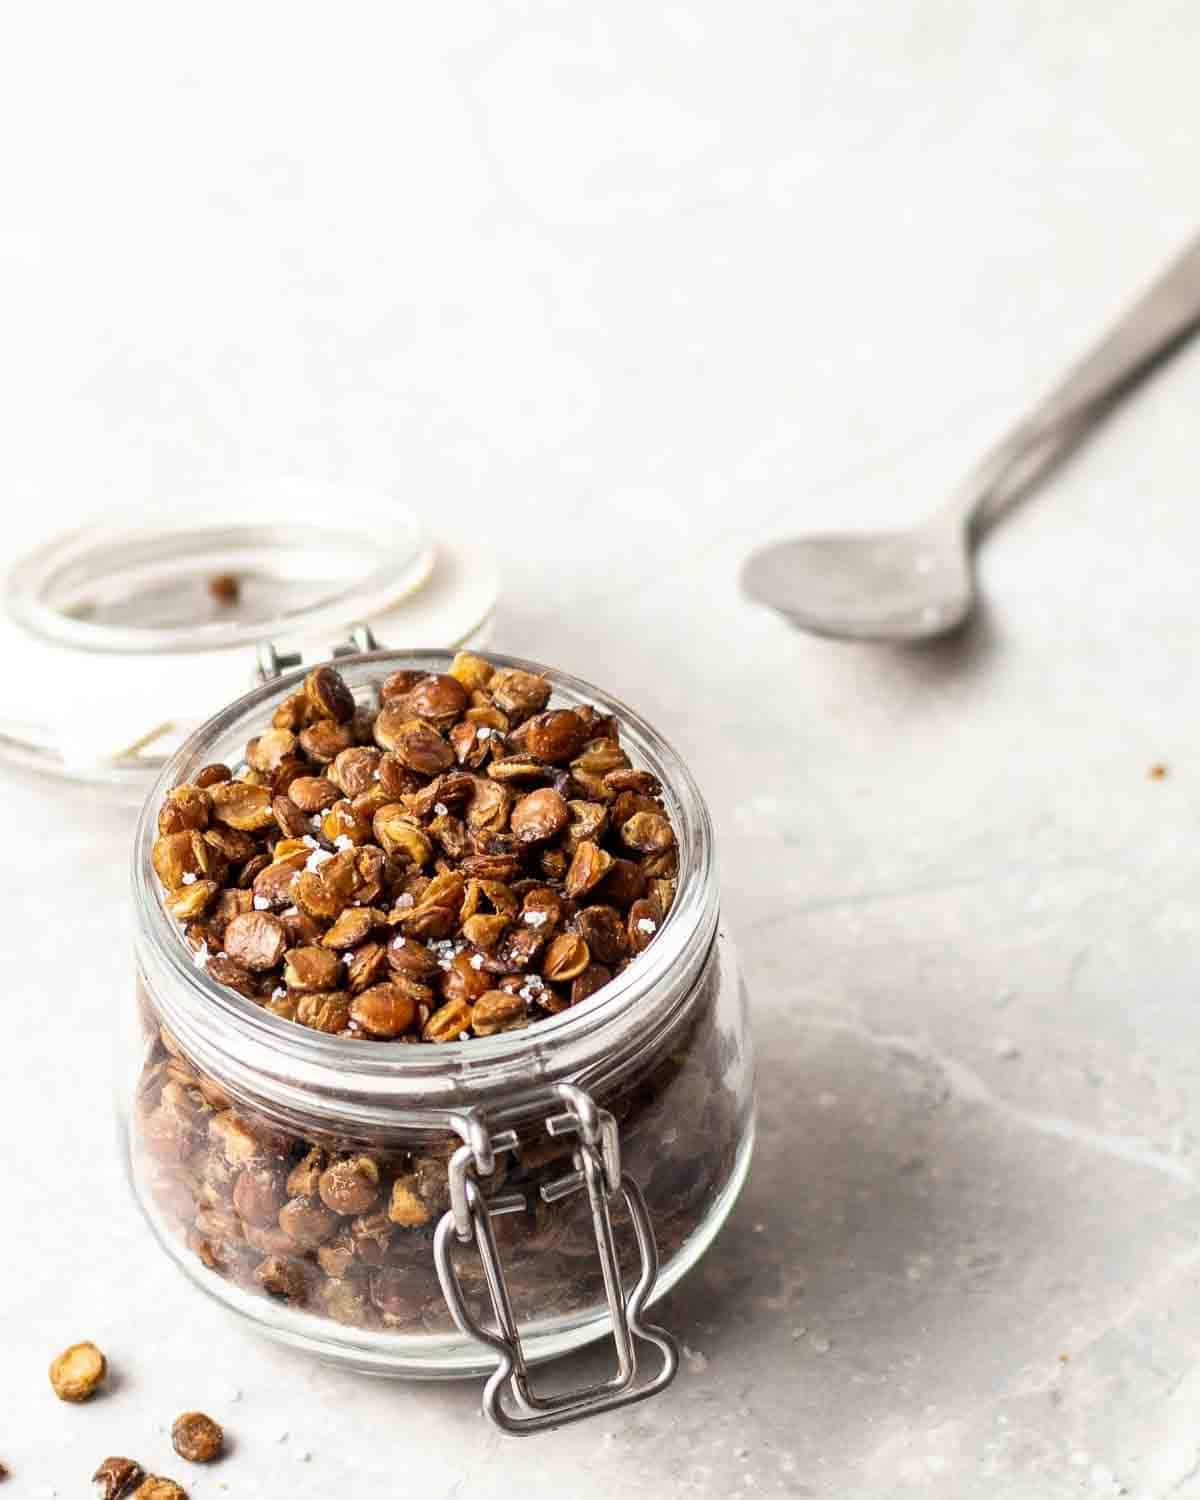 Roasted lentils in a small glass jar. There is a teaspoon in the background.